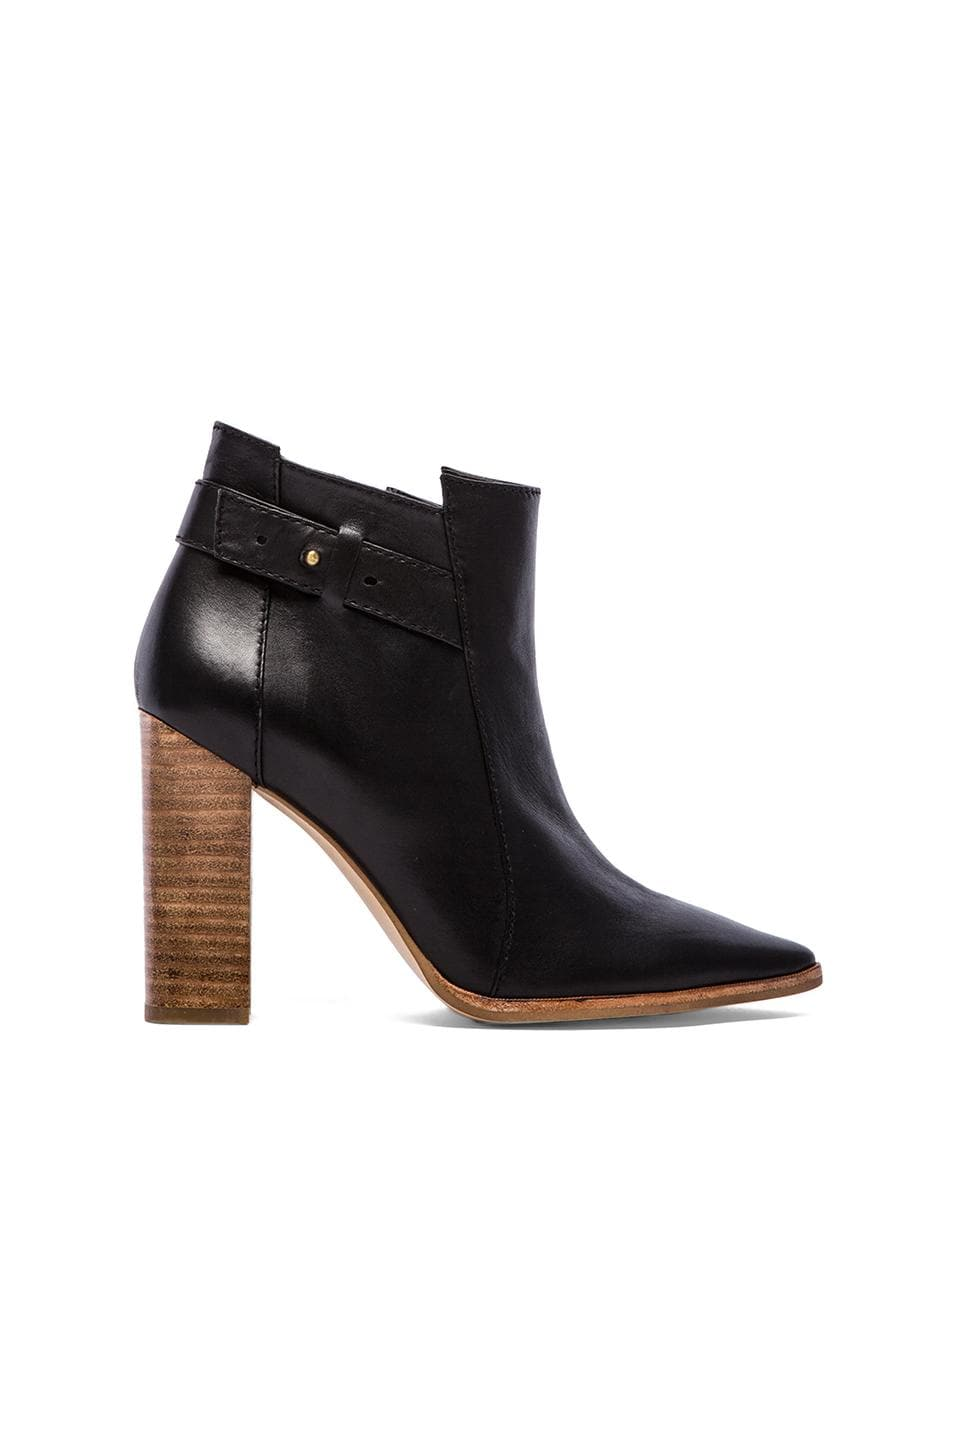 Steven Klick Bootie in Black